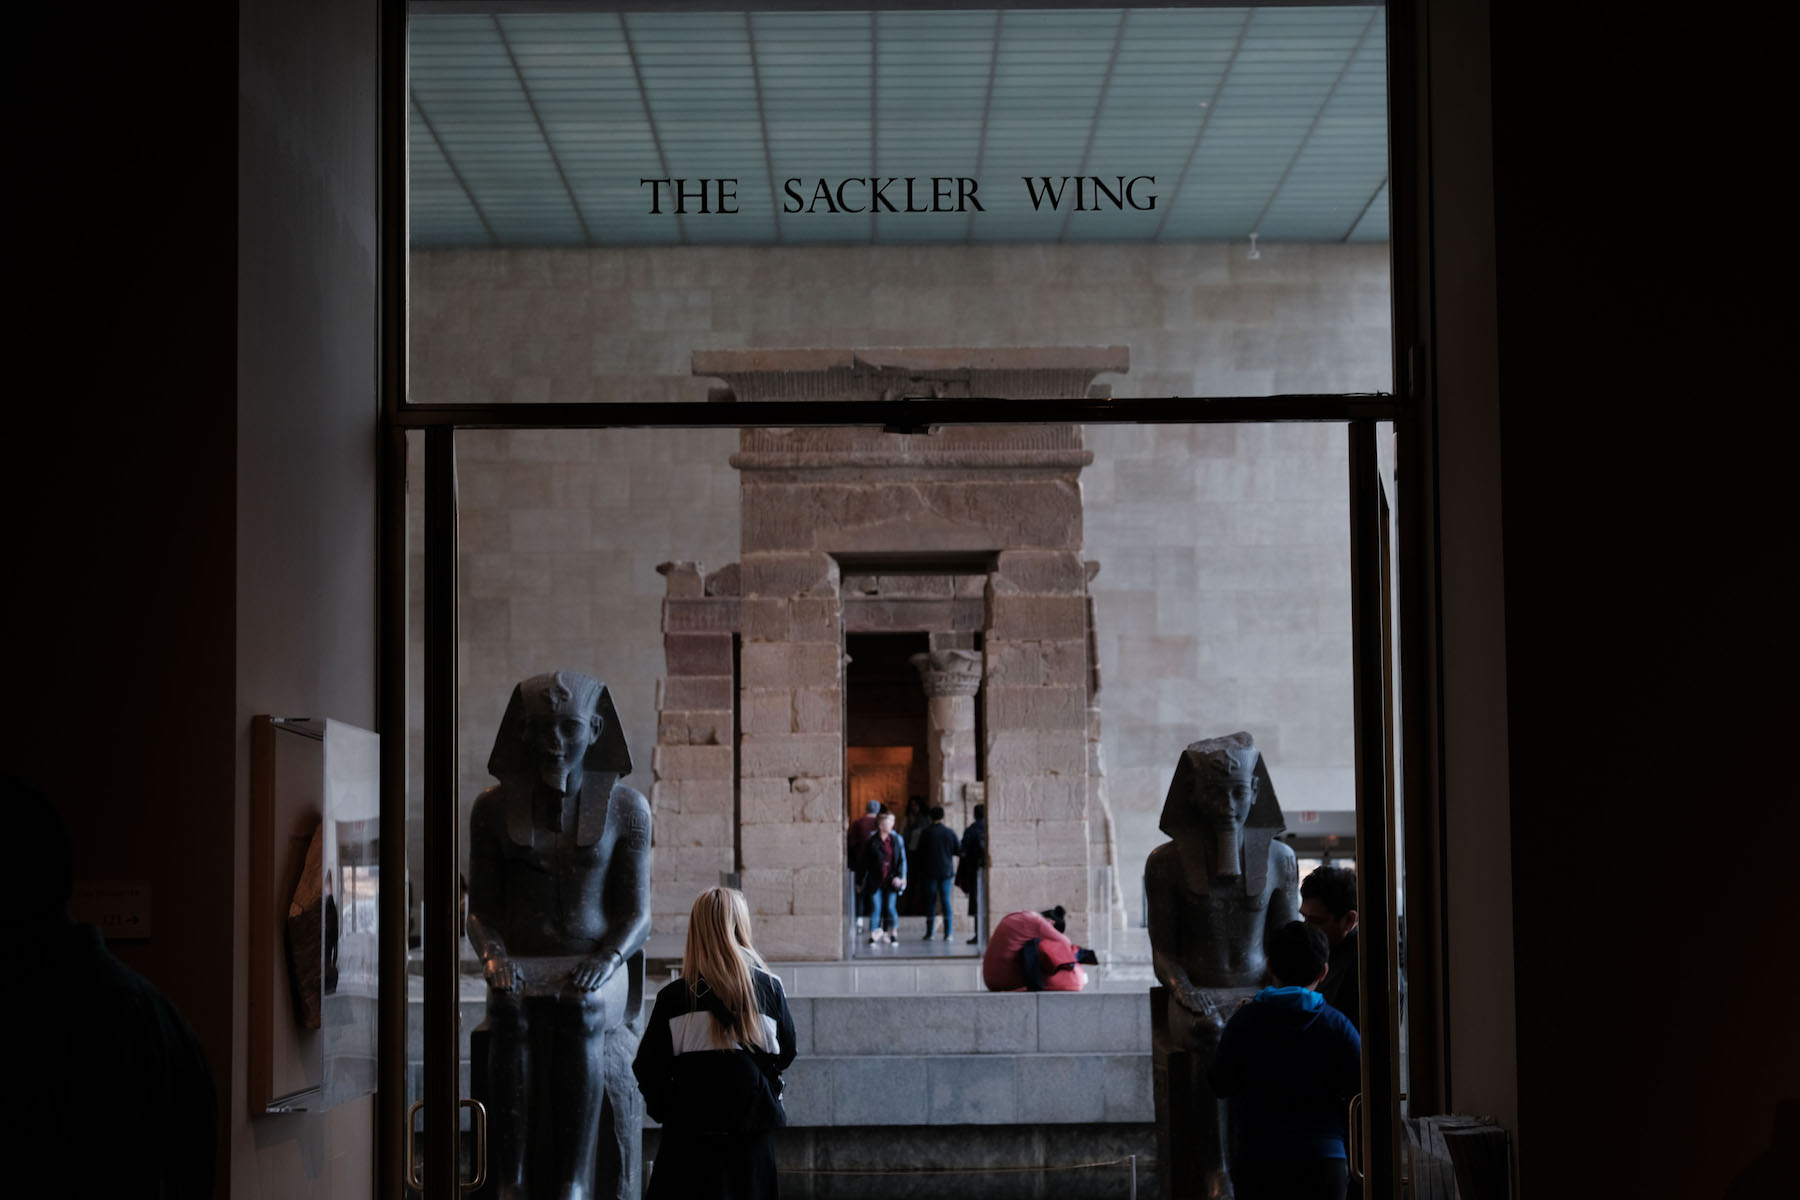 How a Devious Handshake Deal Let Arthur Sackler Store His Art in a Secret Gallery at the Metropolitan Museum for Years | Artnet News